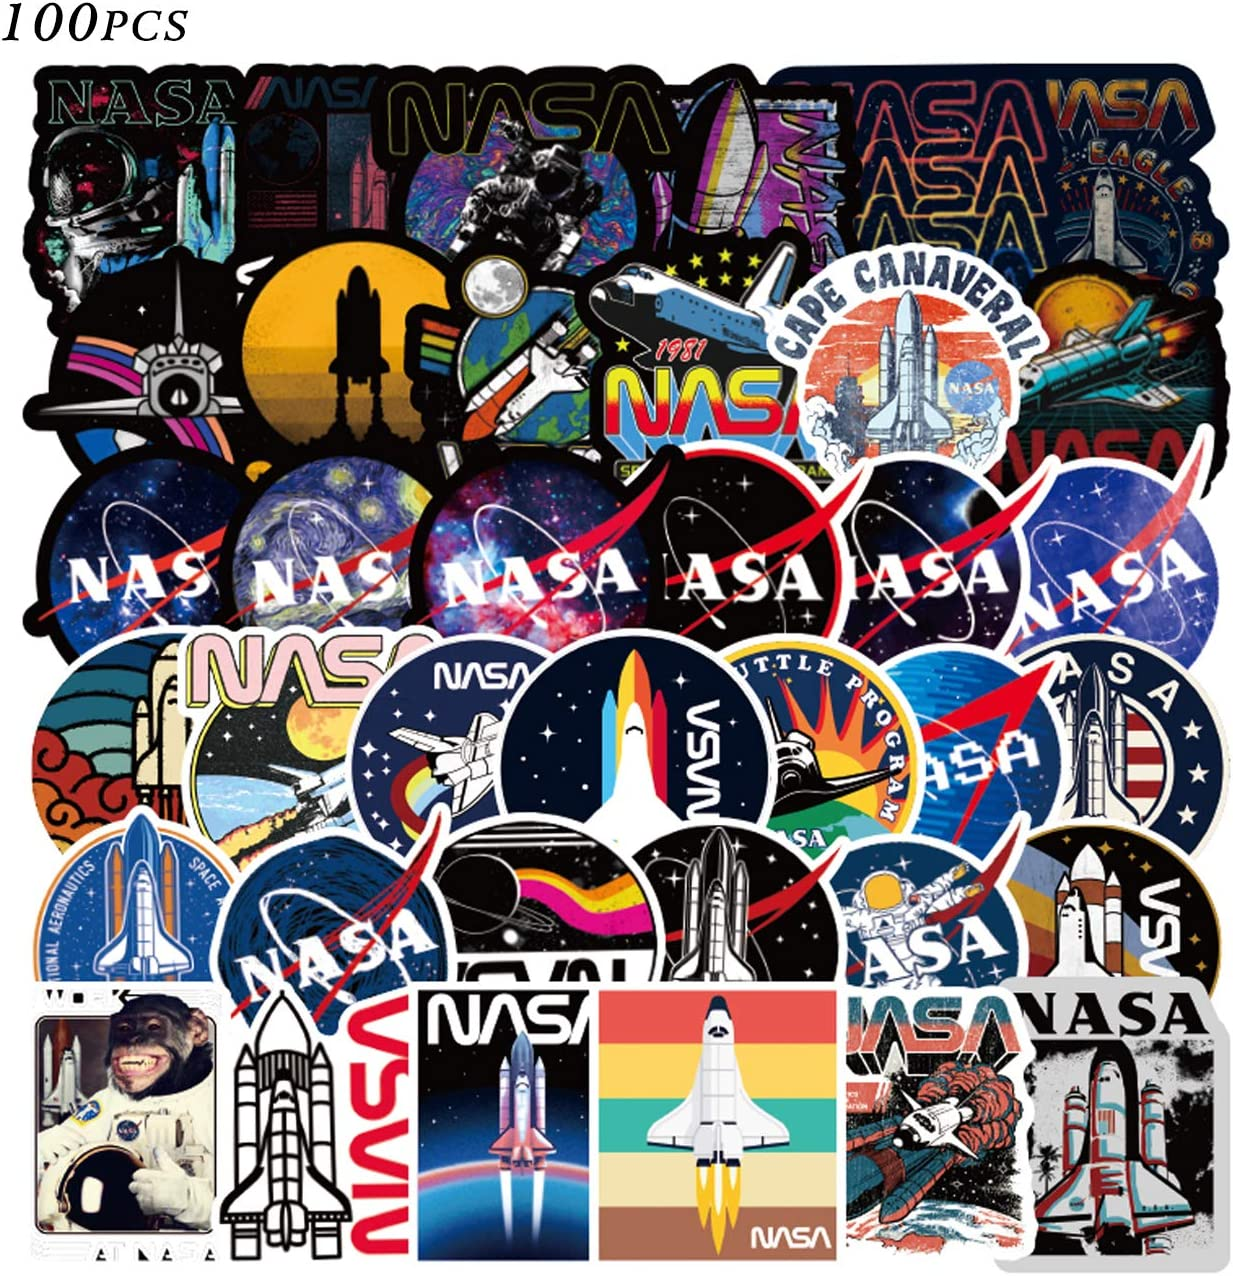 100pcs NASA Sticker Cool Space Astronaut Stickers Packs Laptop Skateboard Sticker Bomb Pack for Adults Teens Kids Skate Water Bottles Waterproof Vinyl Graffiti Stickers Decor Gifts